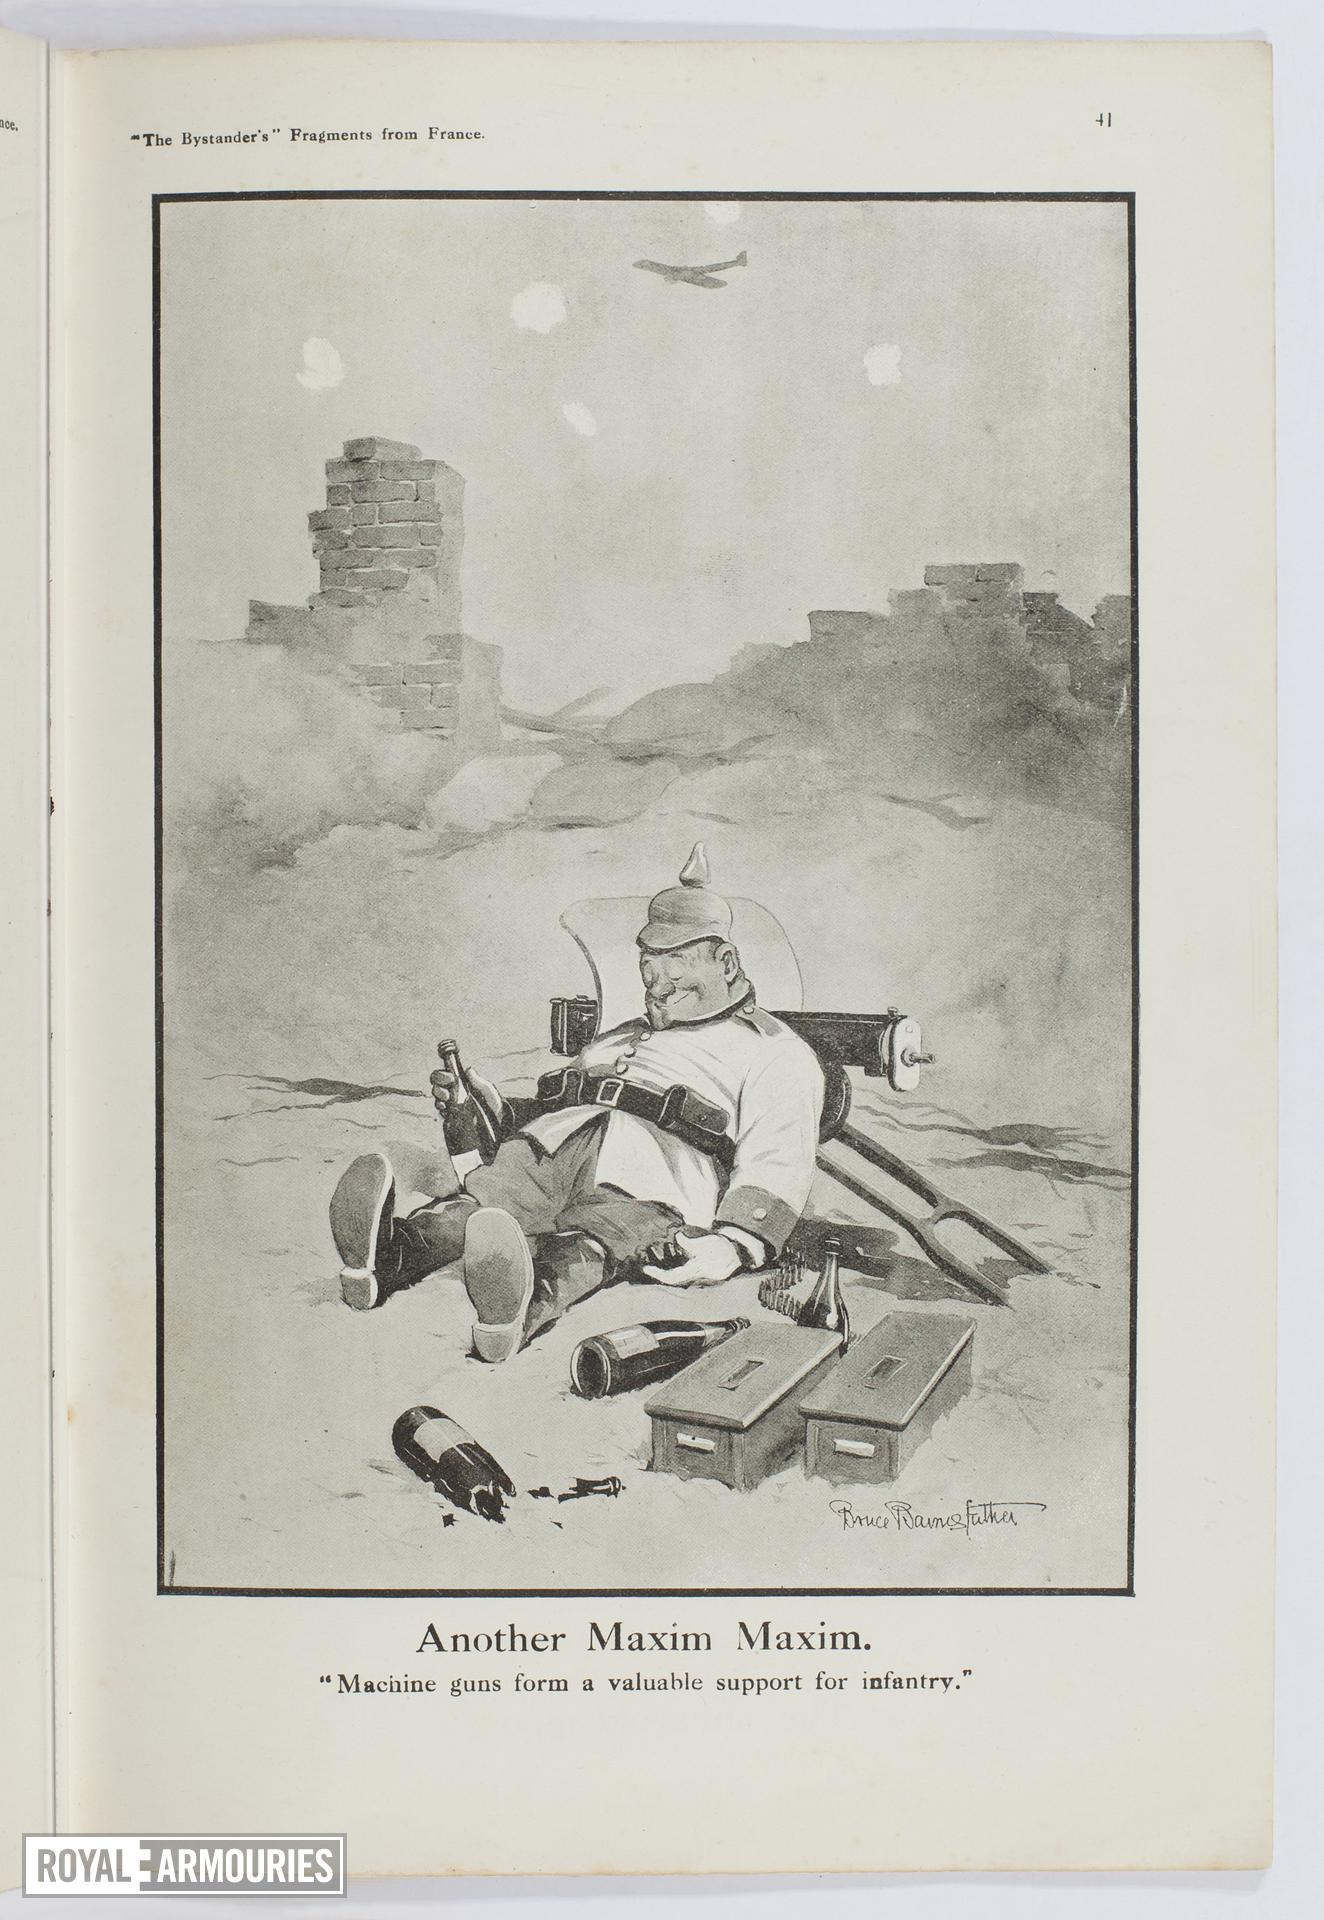 Plate entitled, 'Another Maxim Maxim. Machine guns form a valuable support for infantry,' page 41, taken from the title, The Bystander's Fragments from France, tenth edition by Captain Bruce Bairnsfather.